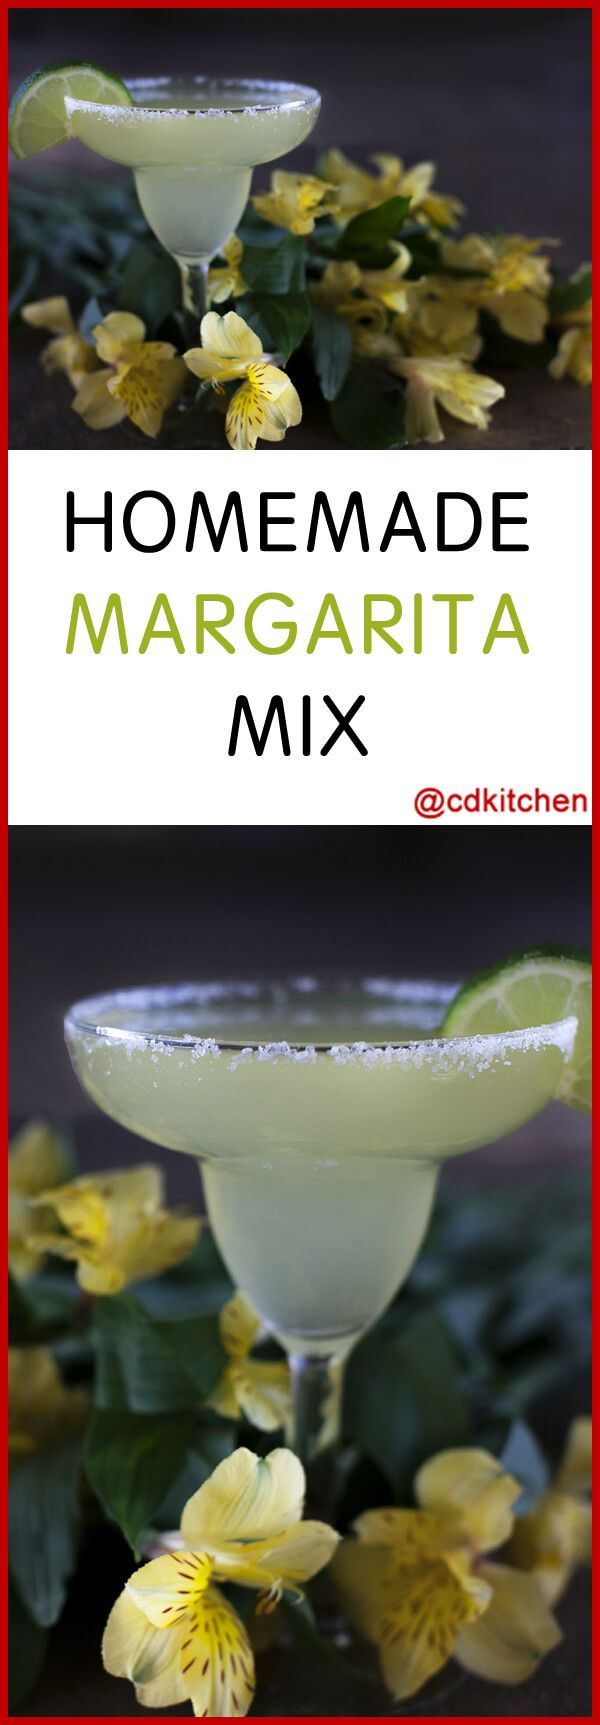 Homemade Margarita Mix - Recipe is made with limes, triple sec, frozen lemonade concentrate, frozen limeade concentrate, frozen mix, water, tequila | CDKitchen.com